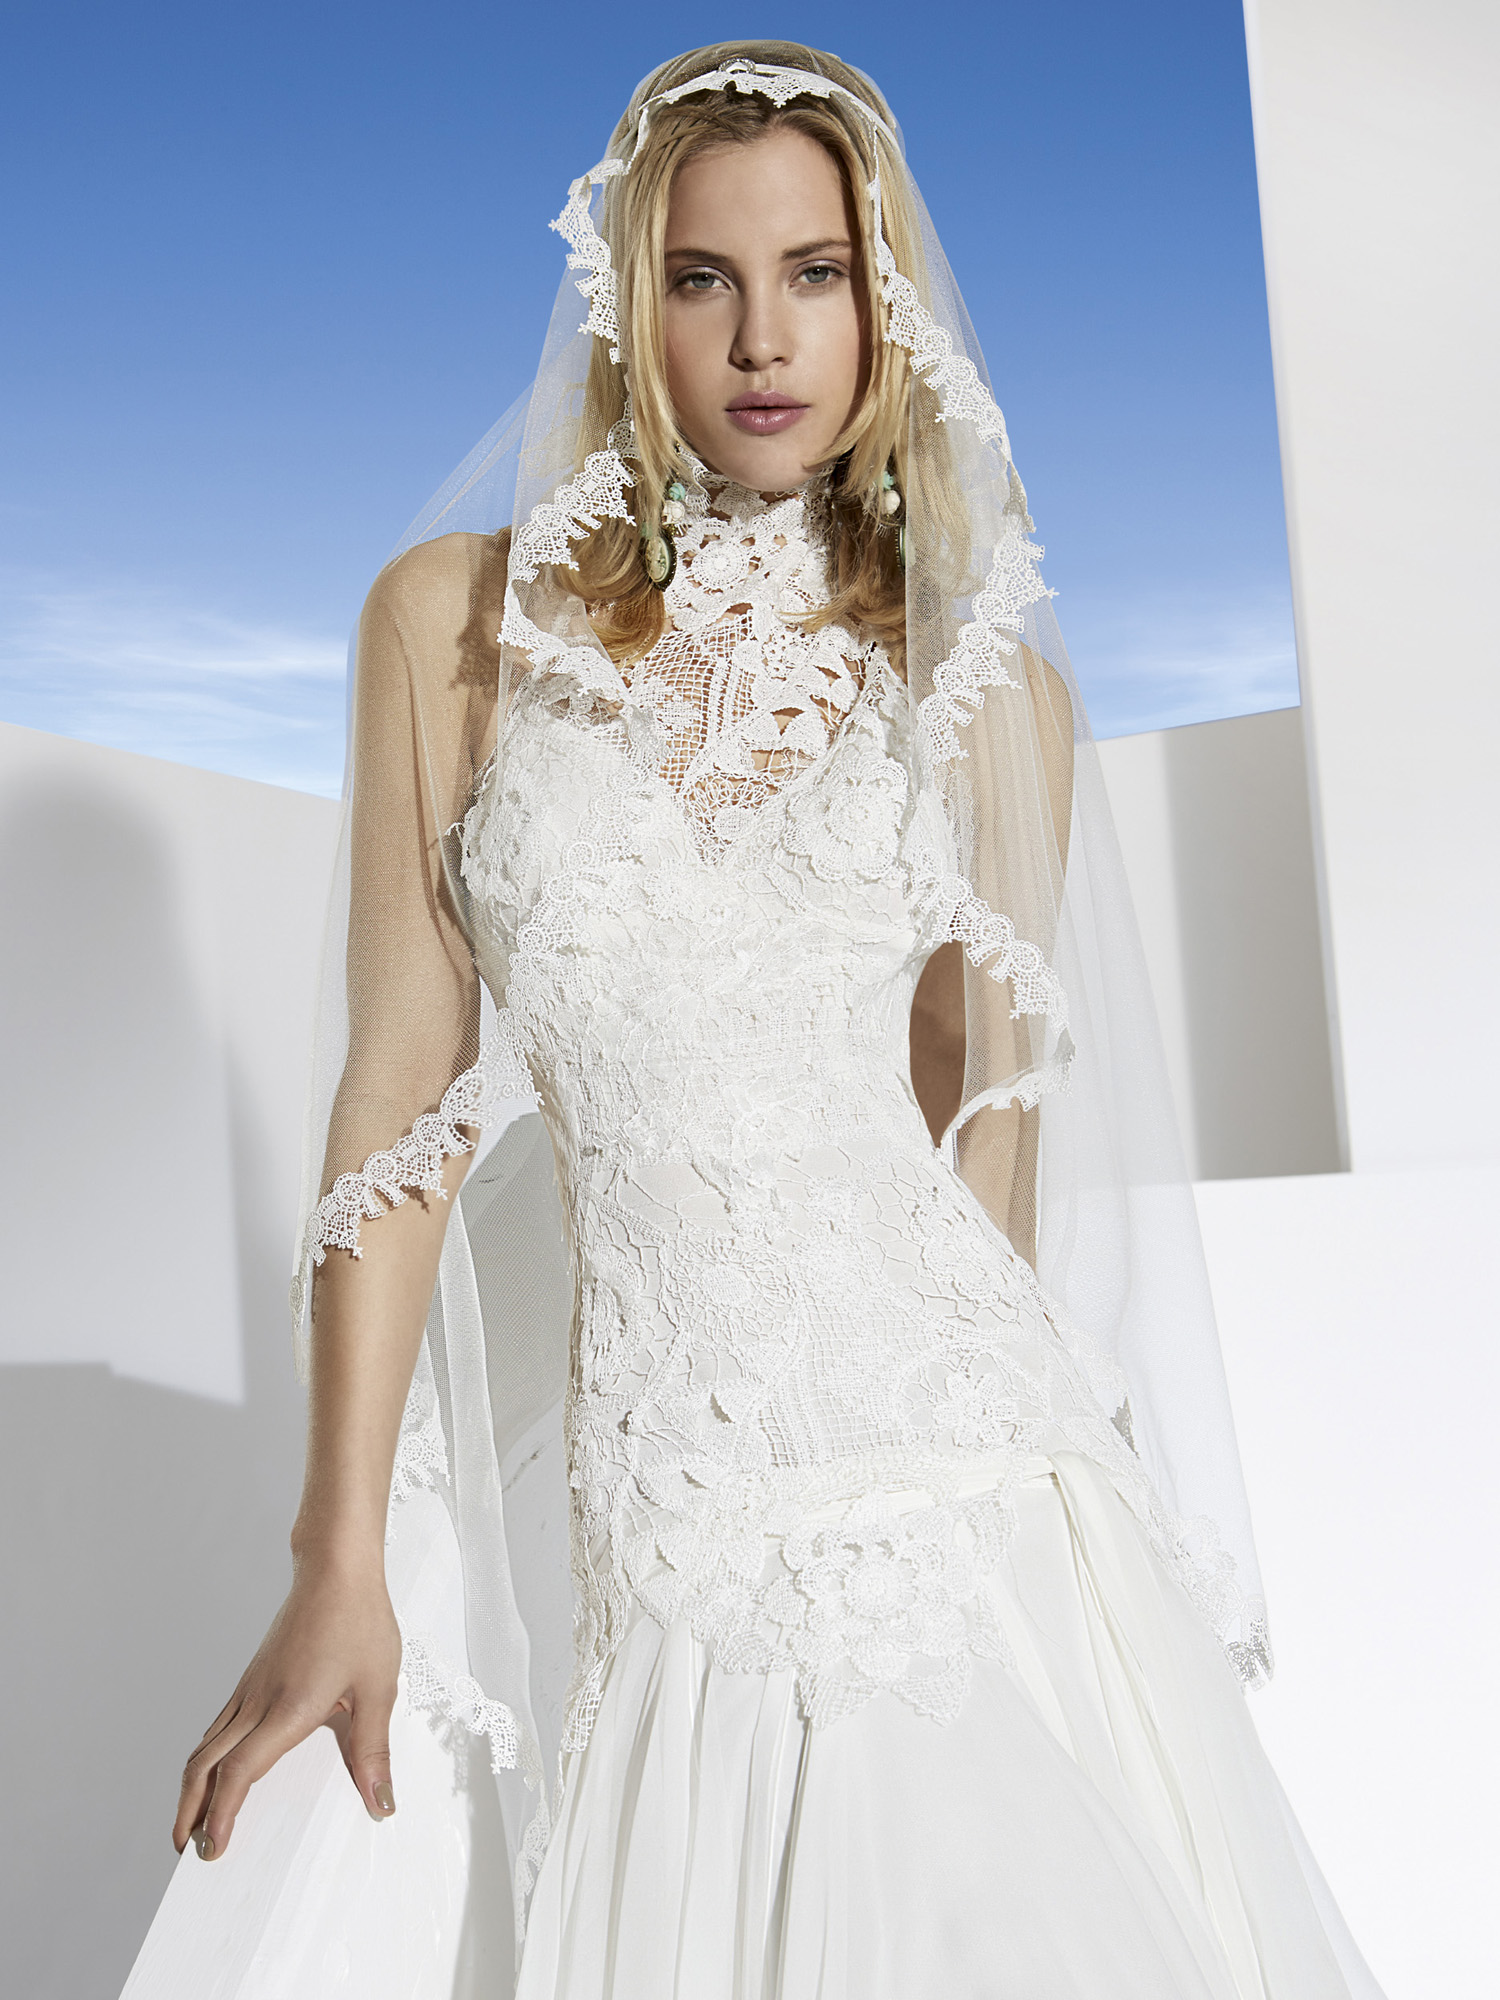 Boho Wedding Dress S Perth : Boho dress wedding dresses bridal gown gowns chic vestidos de